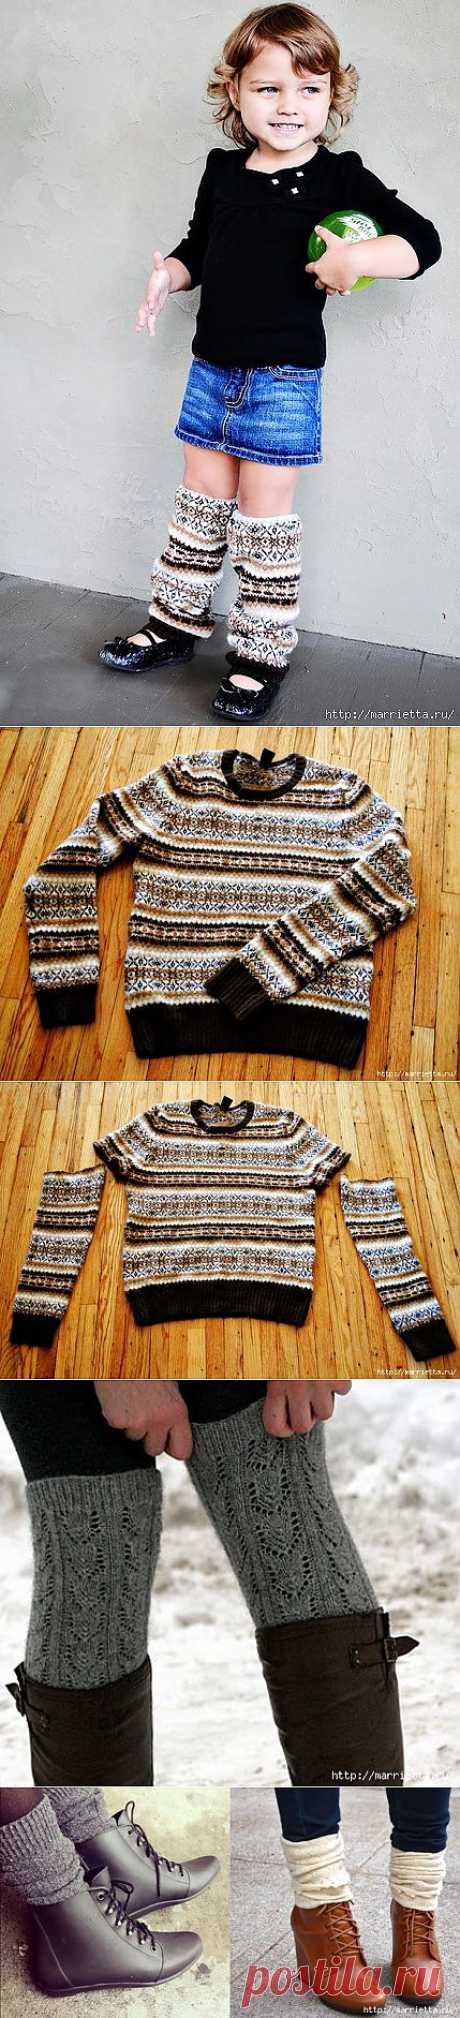 Warm golfs from sweater sleeves.\u000d\u000aWe cut off sleeves. By the way, we receive a sleeveless jacket which it is possible to carry houses\u000d\u000a The lower part golfs will be a cuff which does not need processing, and the top part needs to be hemmed.\u000d\u000aIdeas and master class.